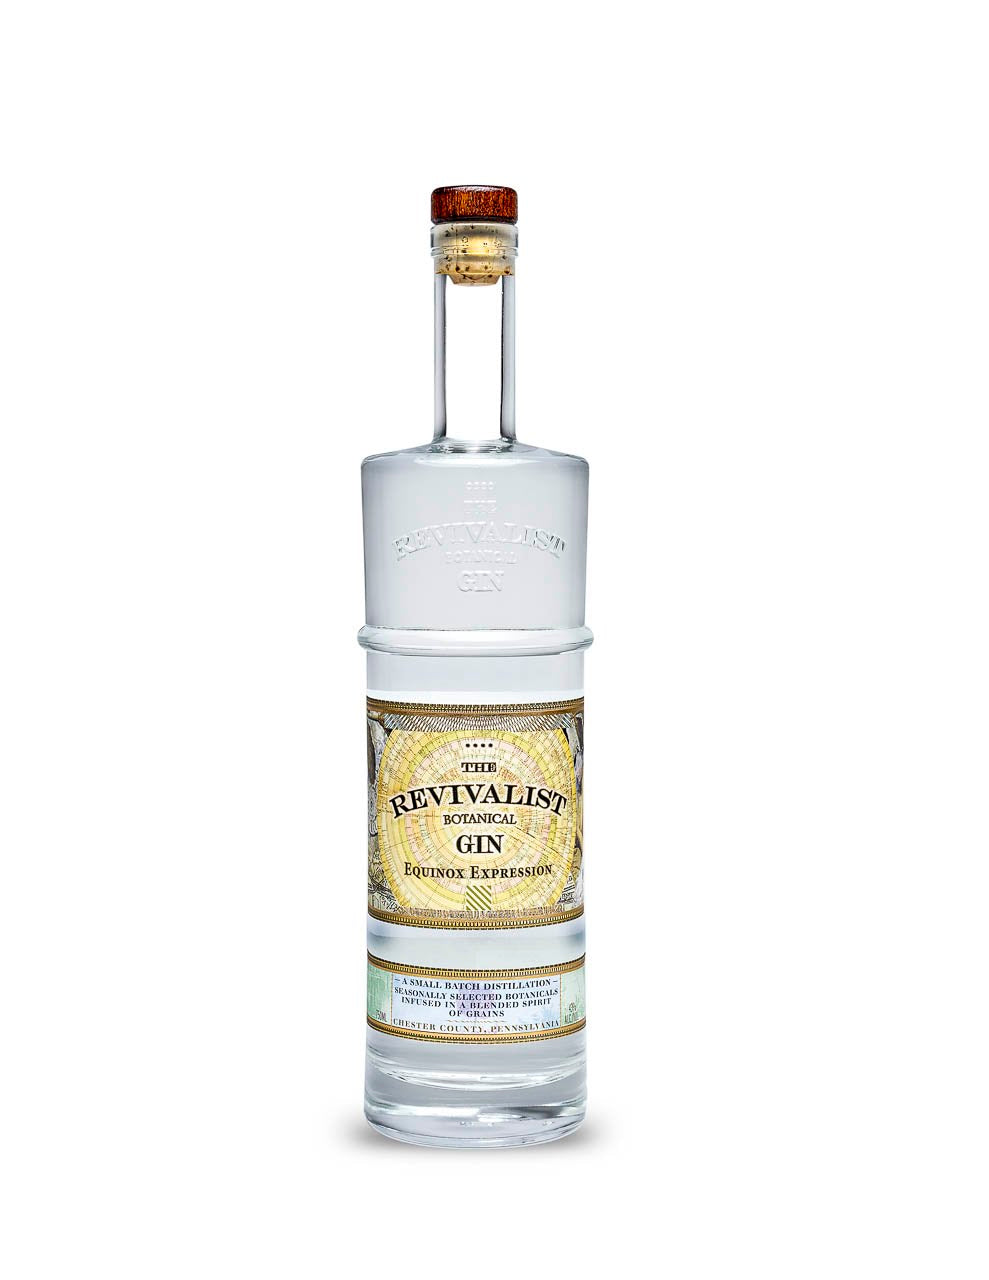 The Revivalist Botanical Gin - Equinox Expression